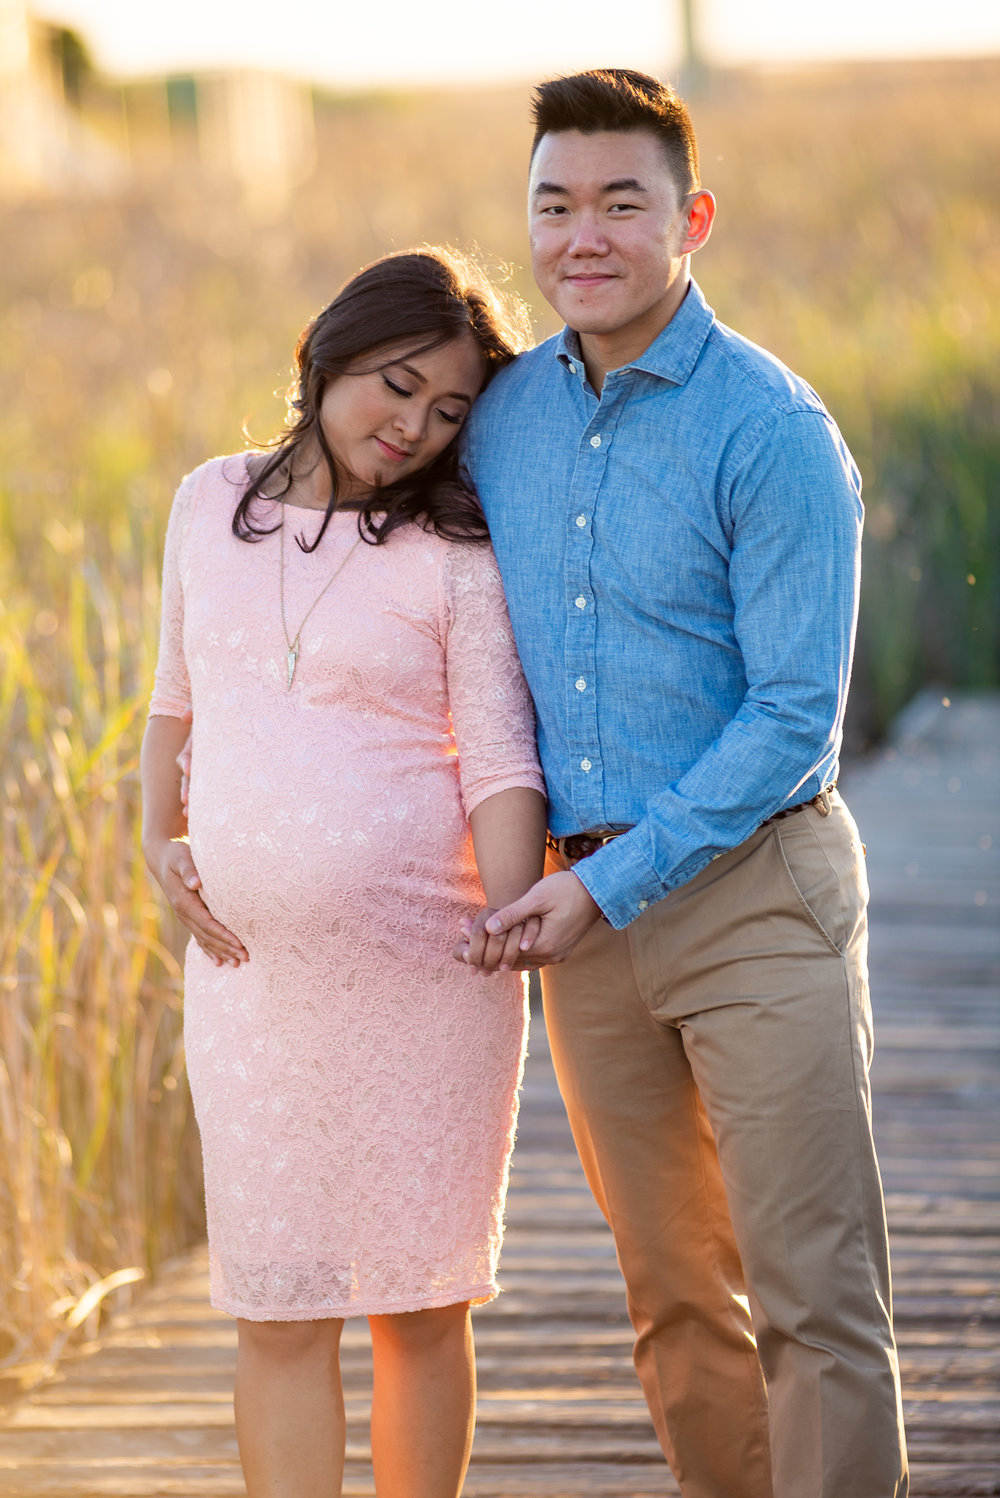 Evening Sunset Maternity Photo Shoot-17-3.jpg